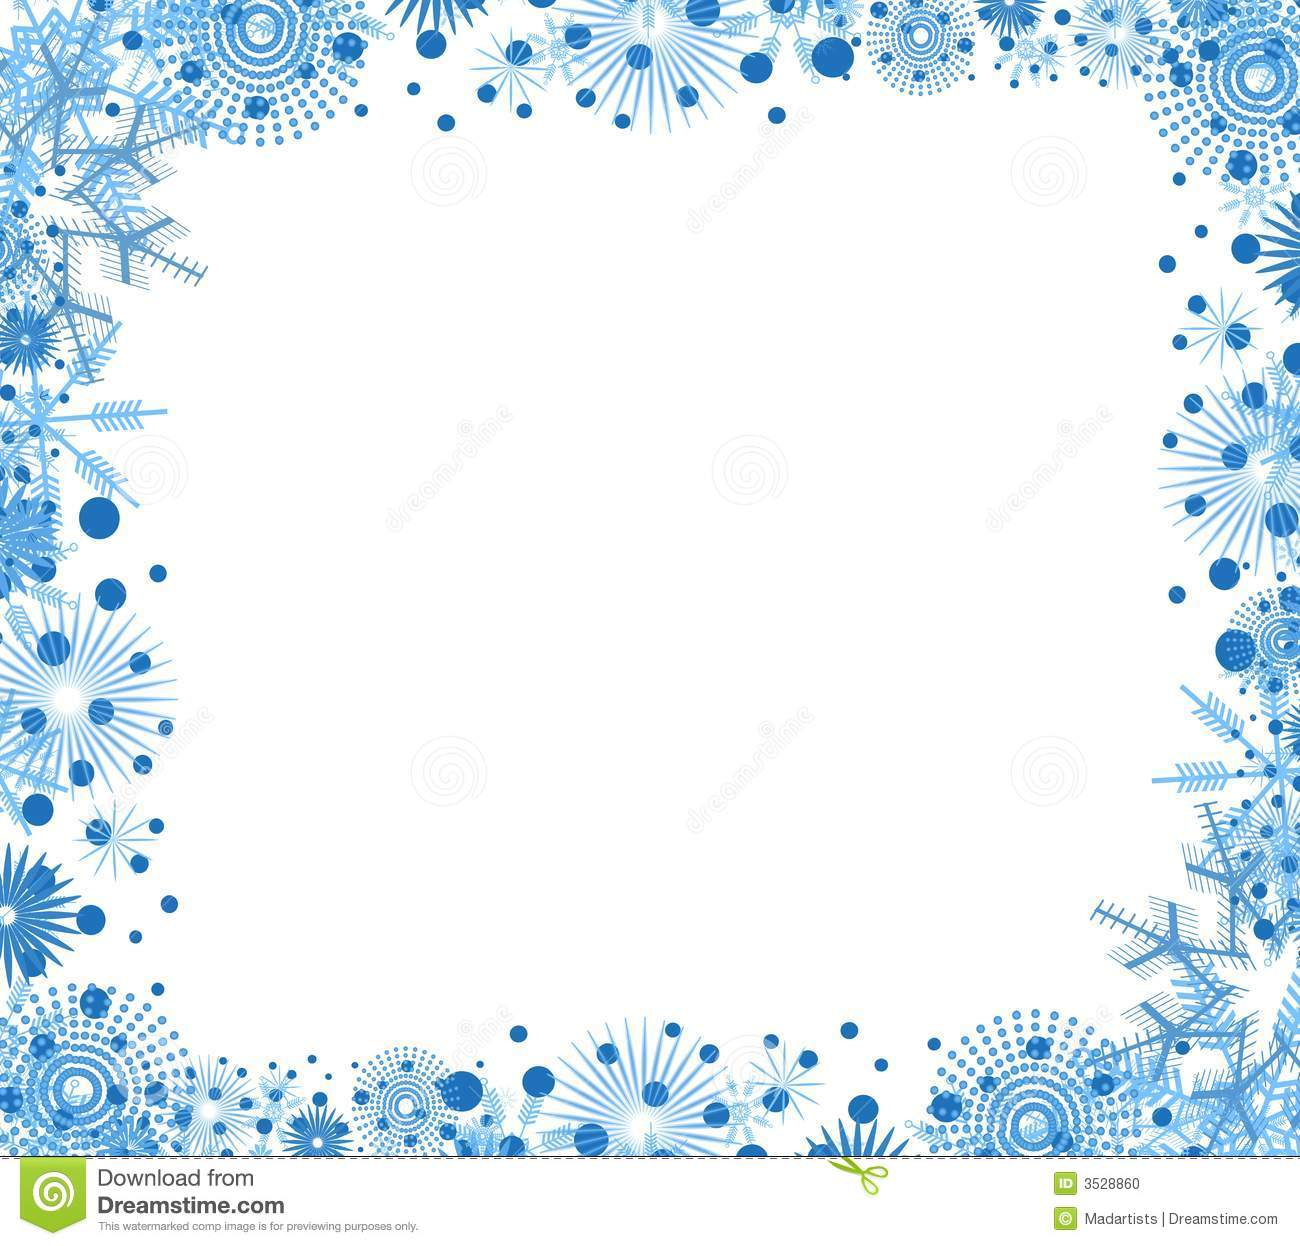 Holiday Clip Art Borders .-Holiday Clip Art Borders .-18